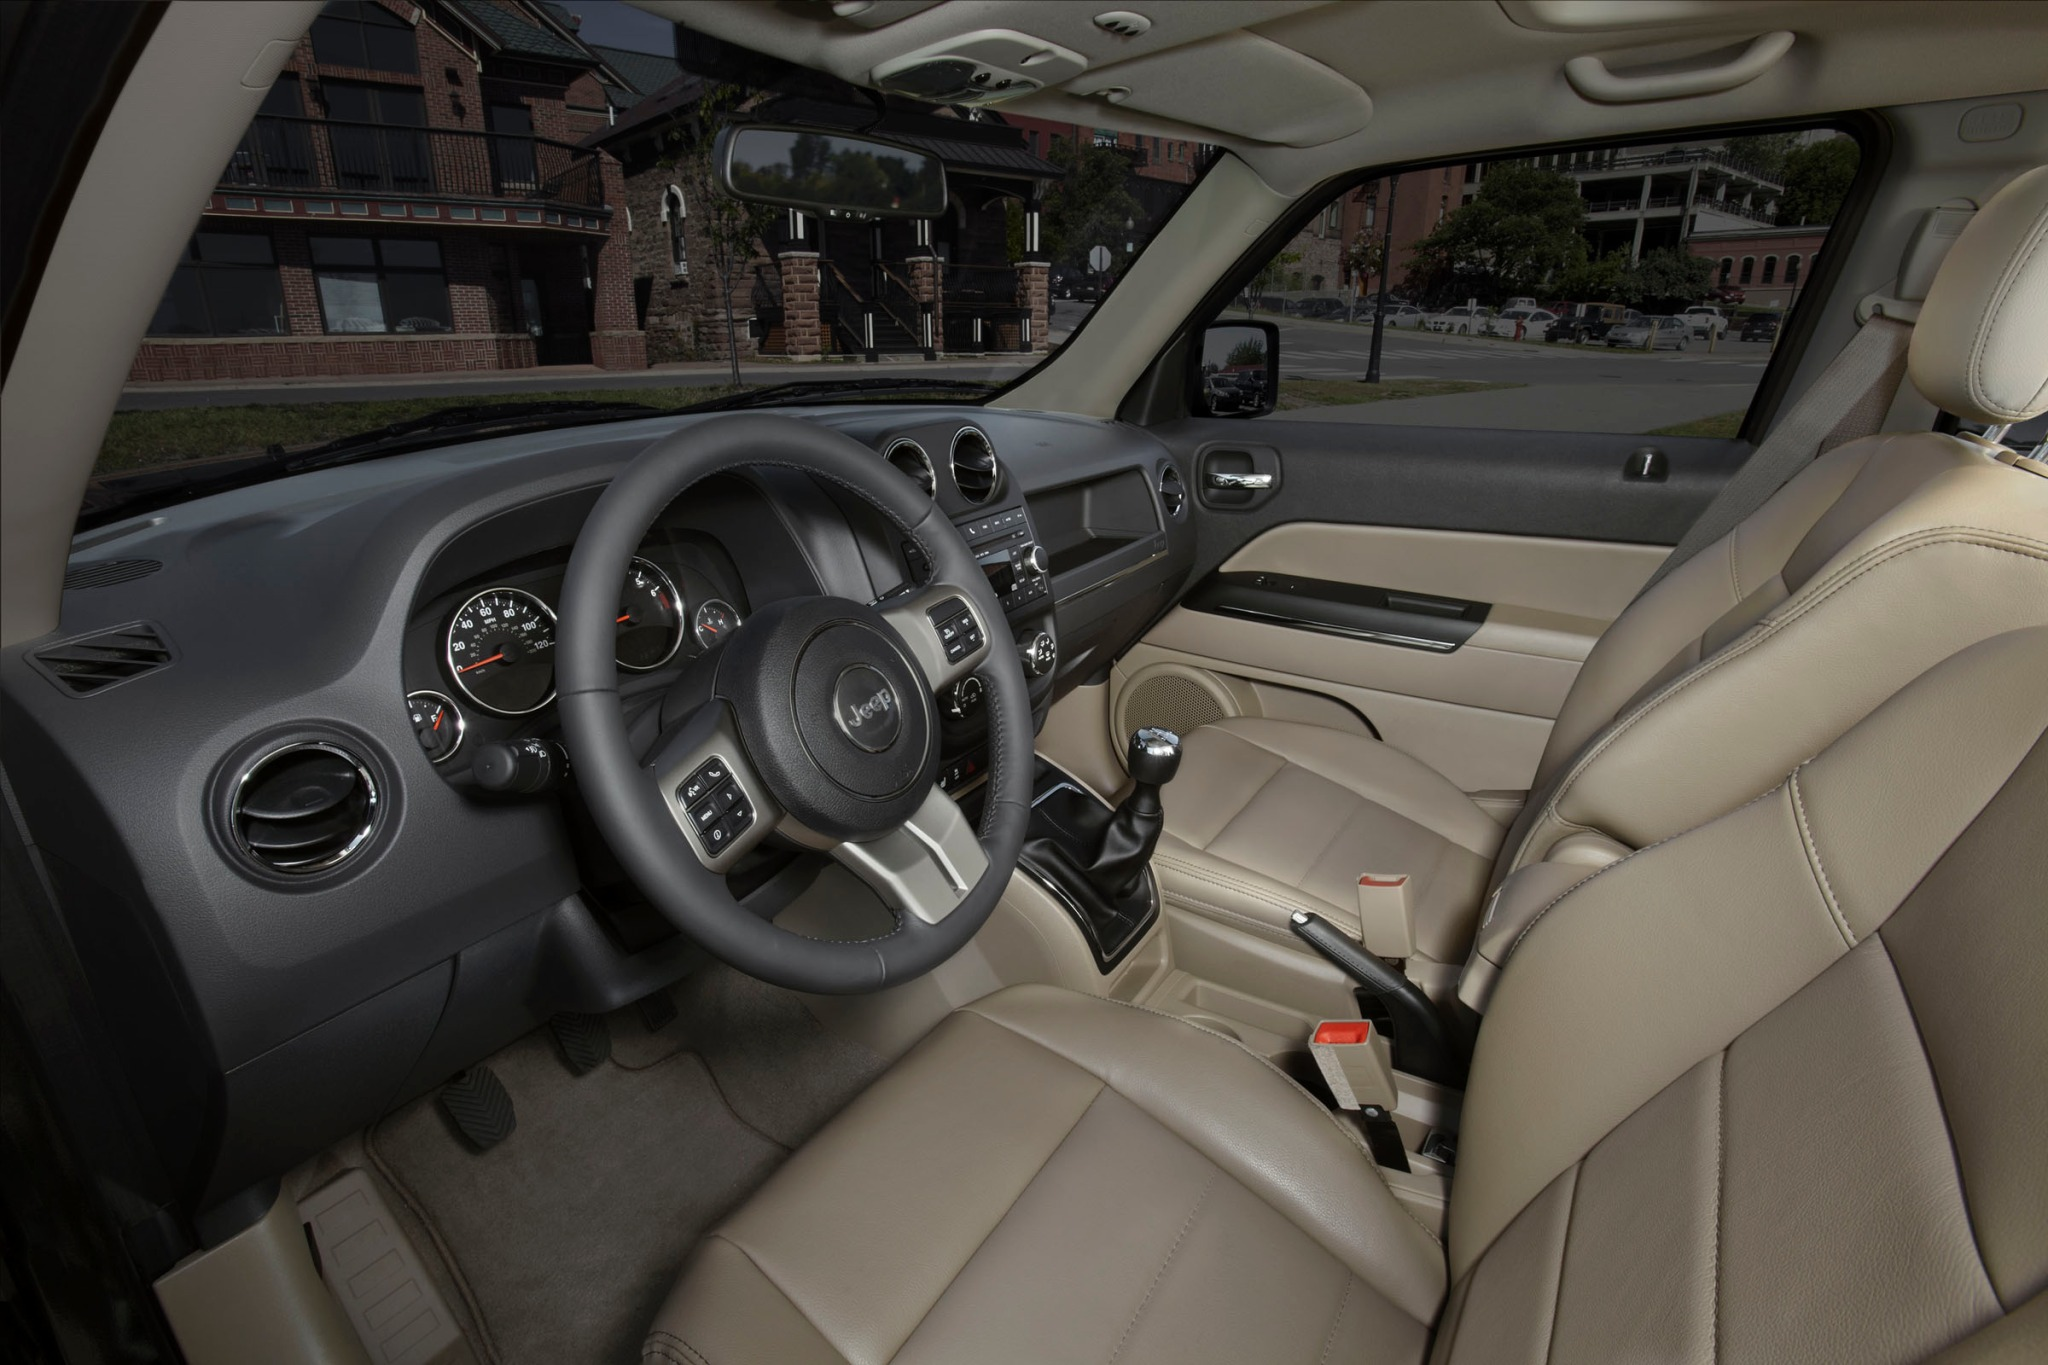 2012 Jeep Patriot Latitud interior #8